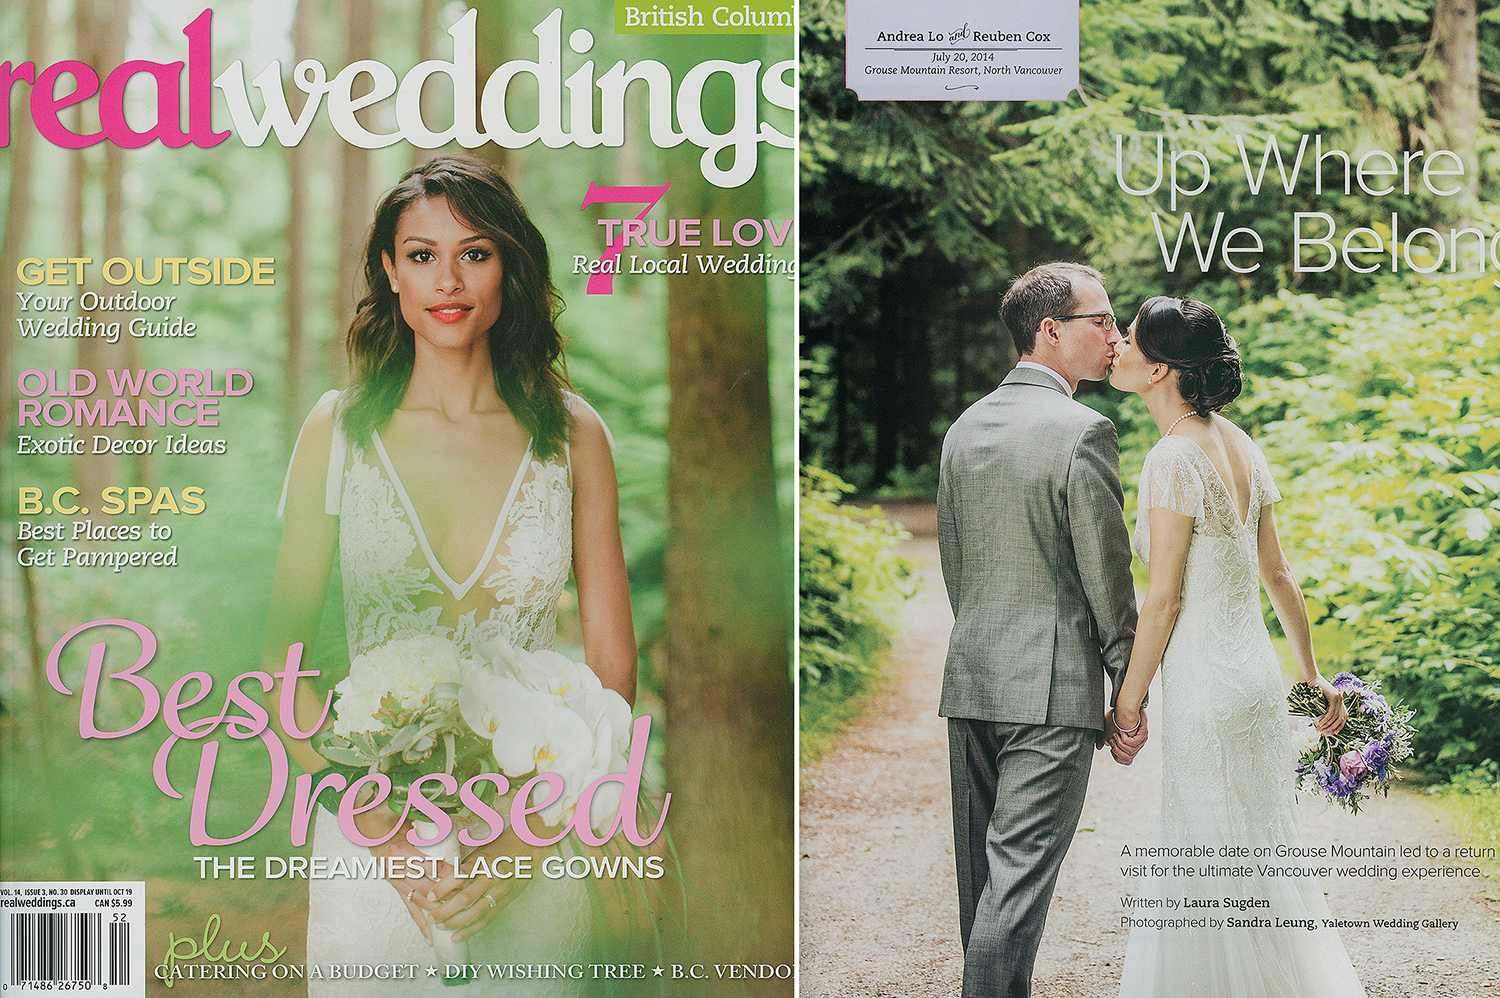 Andrea-Reuben-Grouse-Mountain-Wedding-Real-Weddings-Feature-Yaletown-Photography-cover.jpg